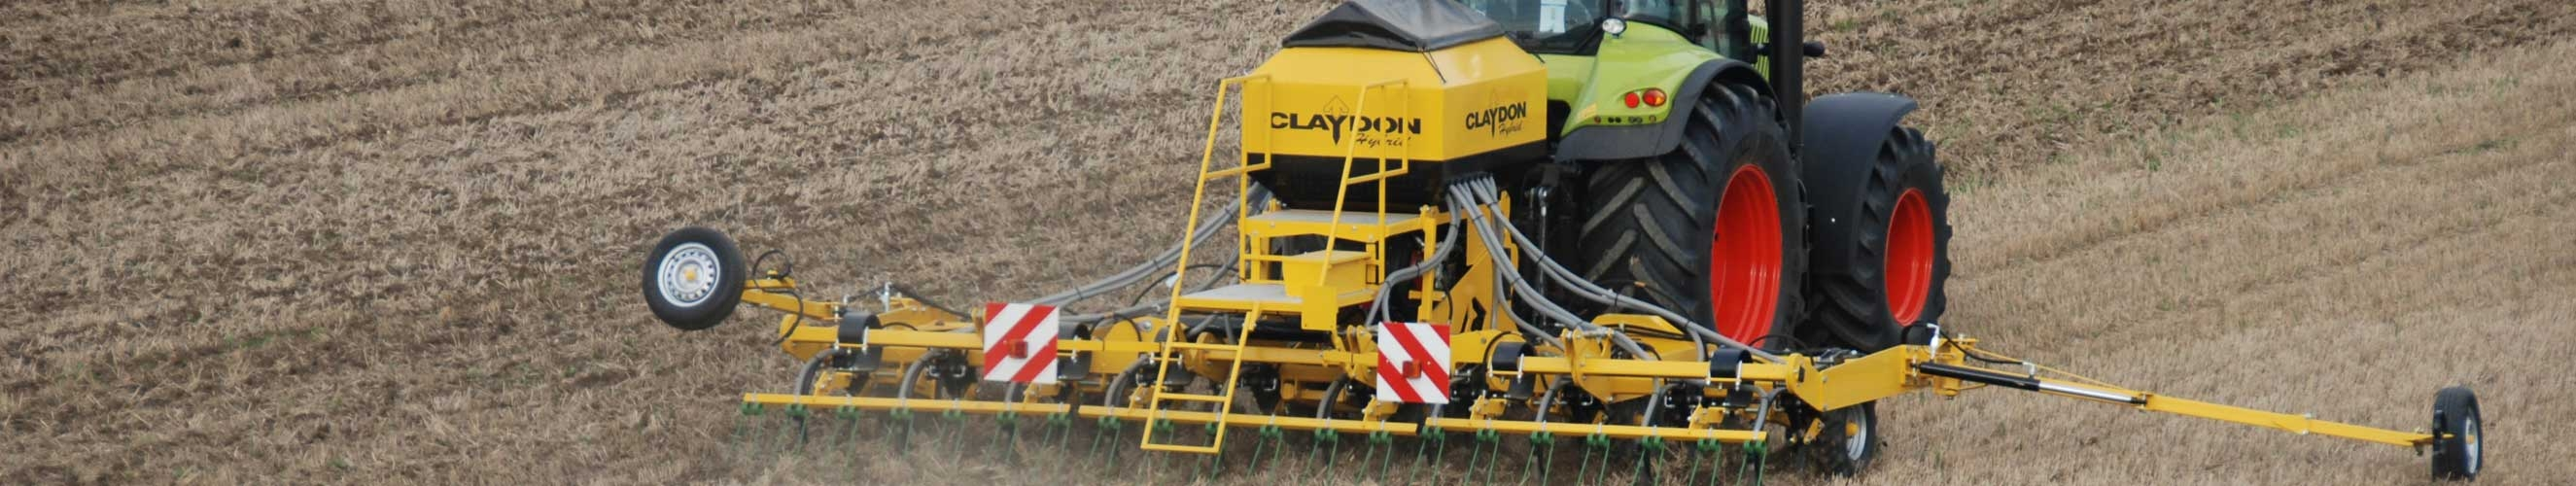 Claydon Drills